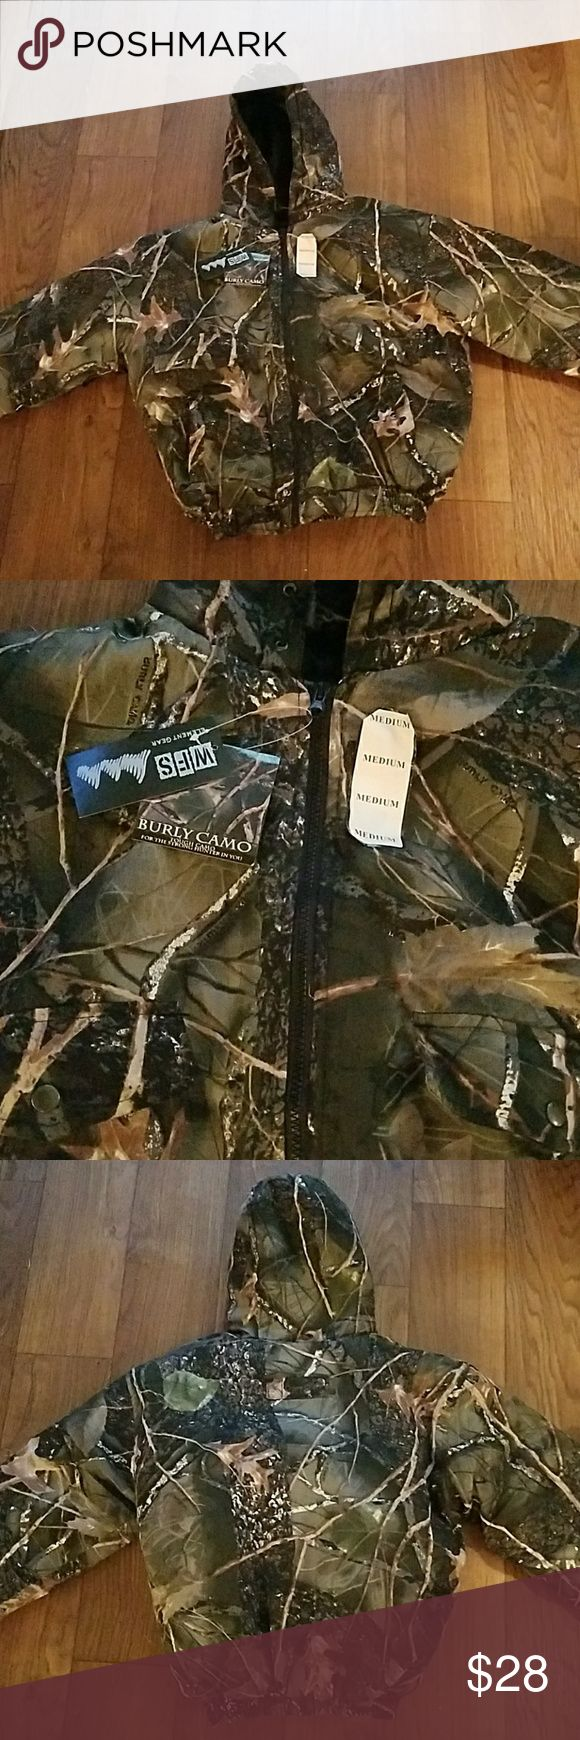 ☆NEW☆ WFS Hunting coat. Burly camo. New with tags WFS hunting coat. Burly camo. Size medium. Jackets & Coats